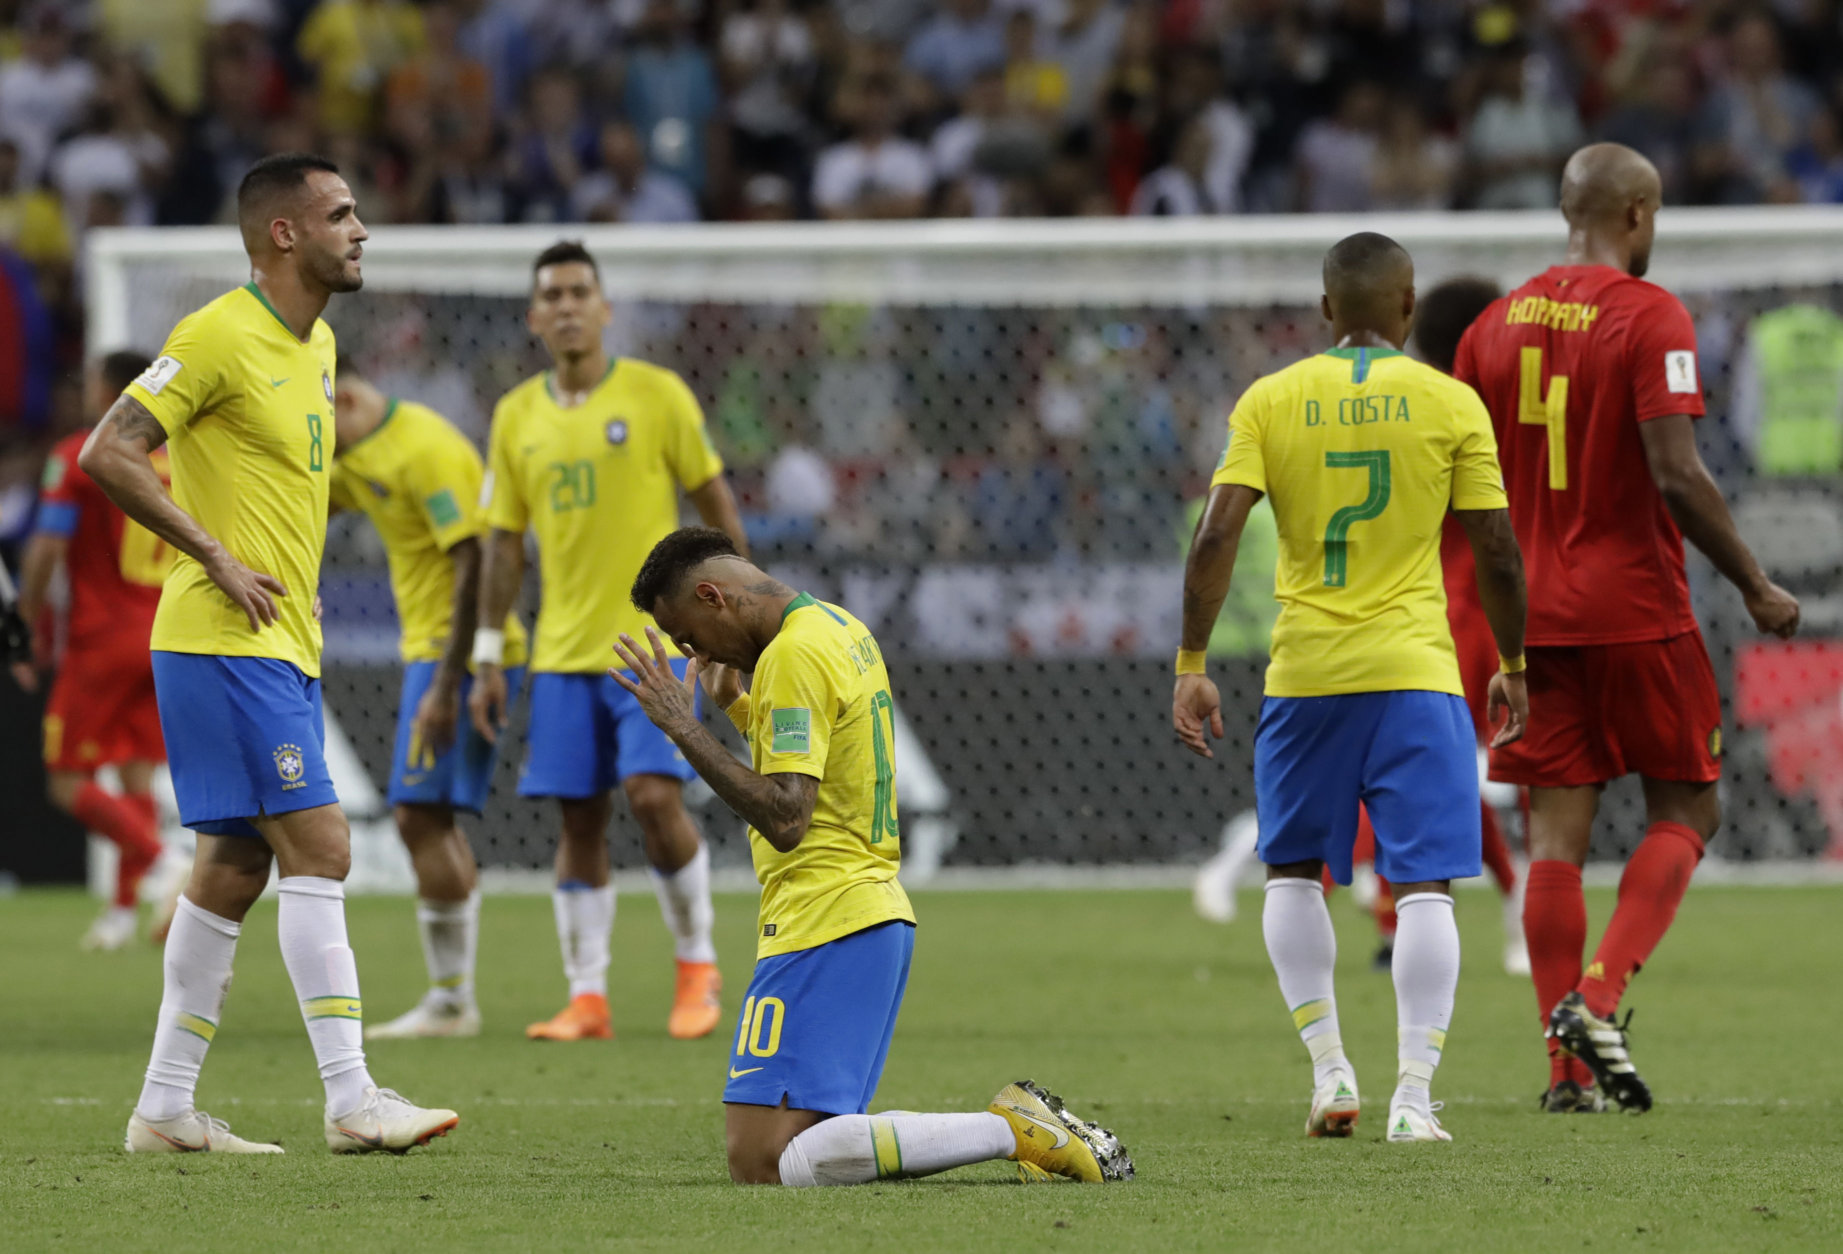 Brazil's Neymar, center, reacts after Brazil is knocked out by Belgium following their quarterfinal match at the 2018 soccer World Cup in the Kazan Arena, in Kazan, Russia, Friday, July 6, 2018. (AP Photo/Andre Penner)